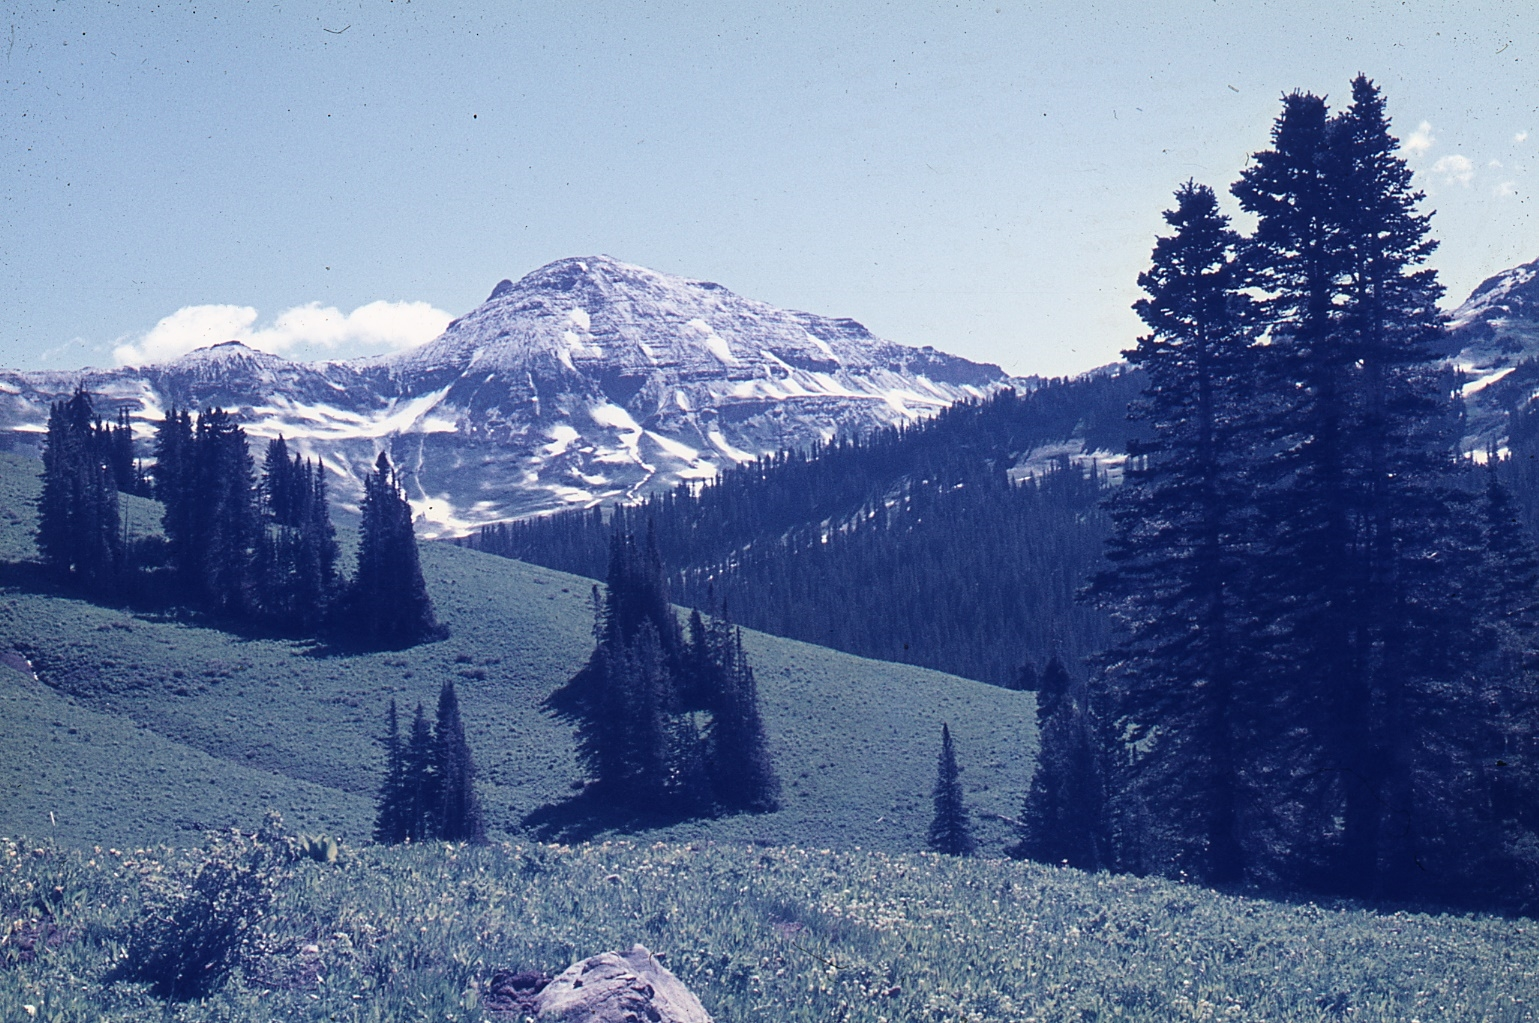 Colorado Rocky Mts, where Graham studied bumblebees for his PhD research